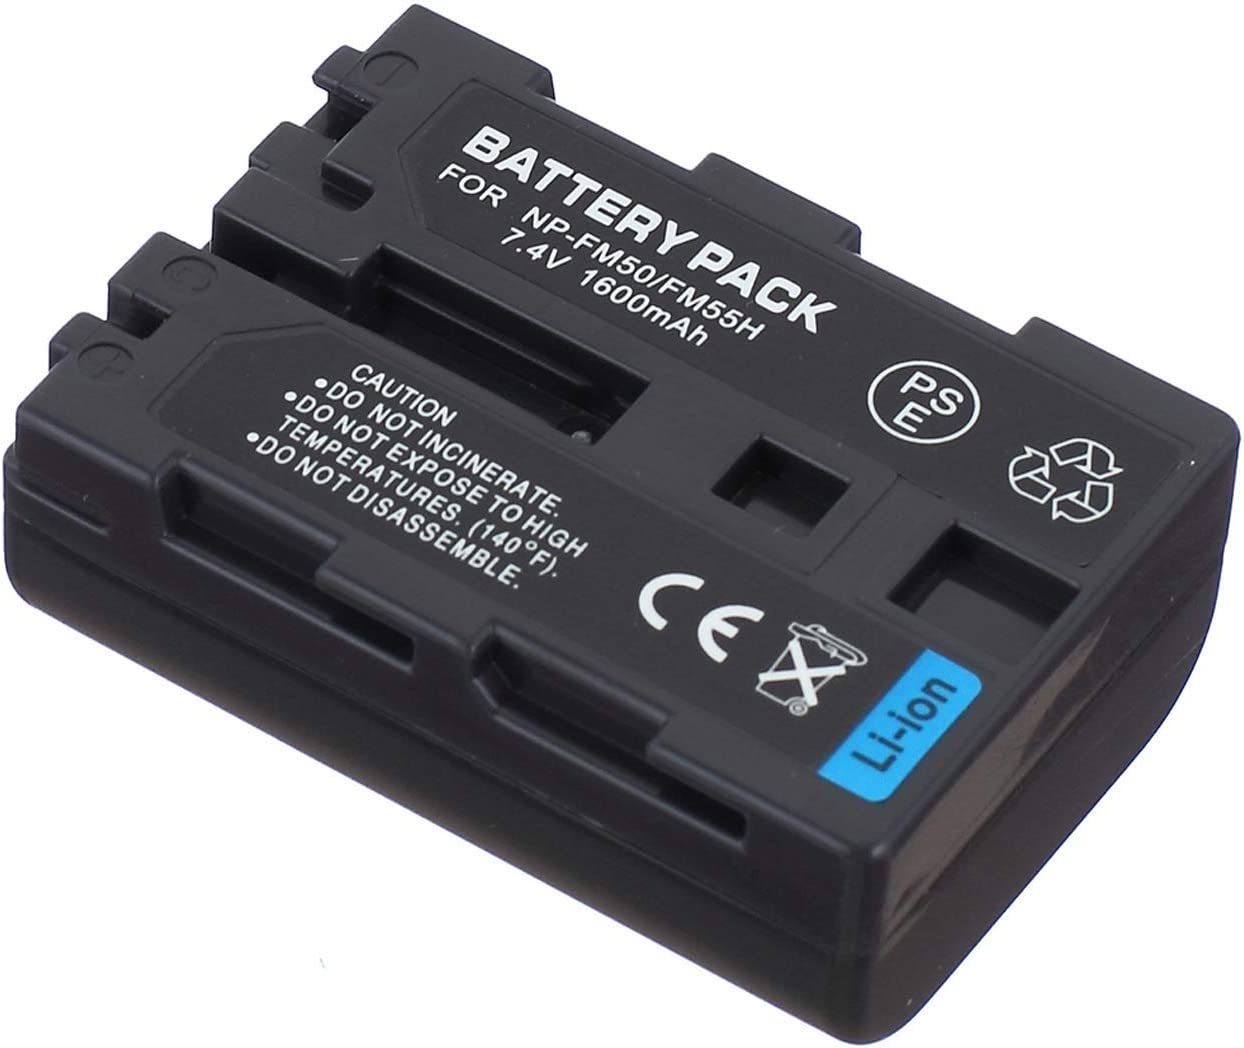 DCR-TRV240 DCR-TRV340 Handycam Camcorder Battery Charger for Sony DCR-TRV140